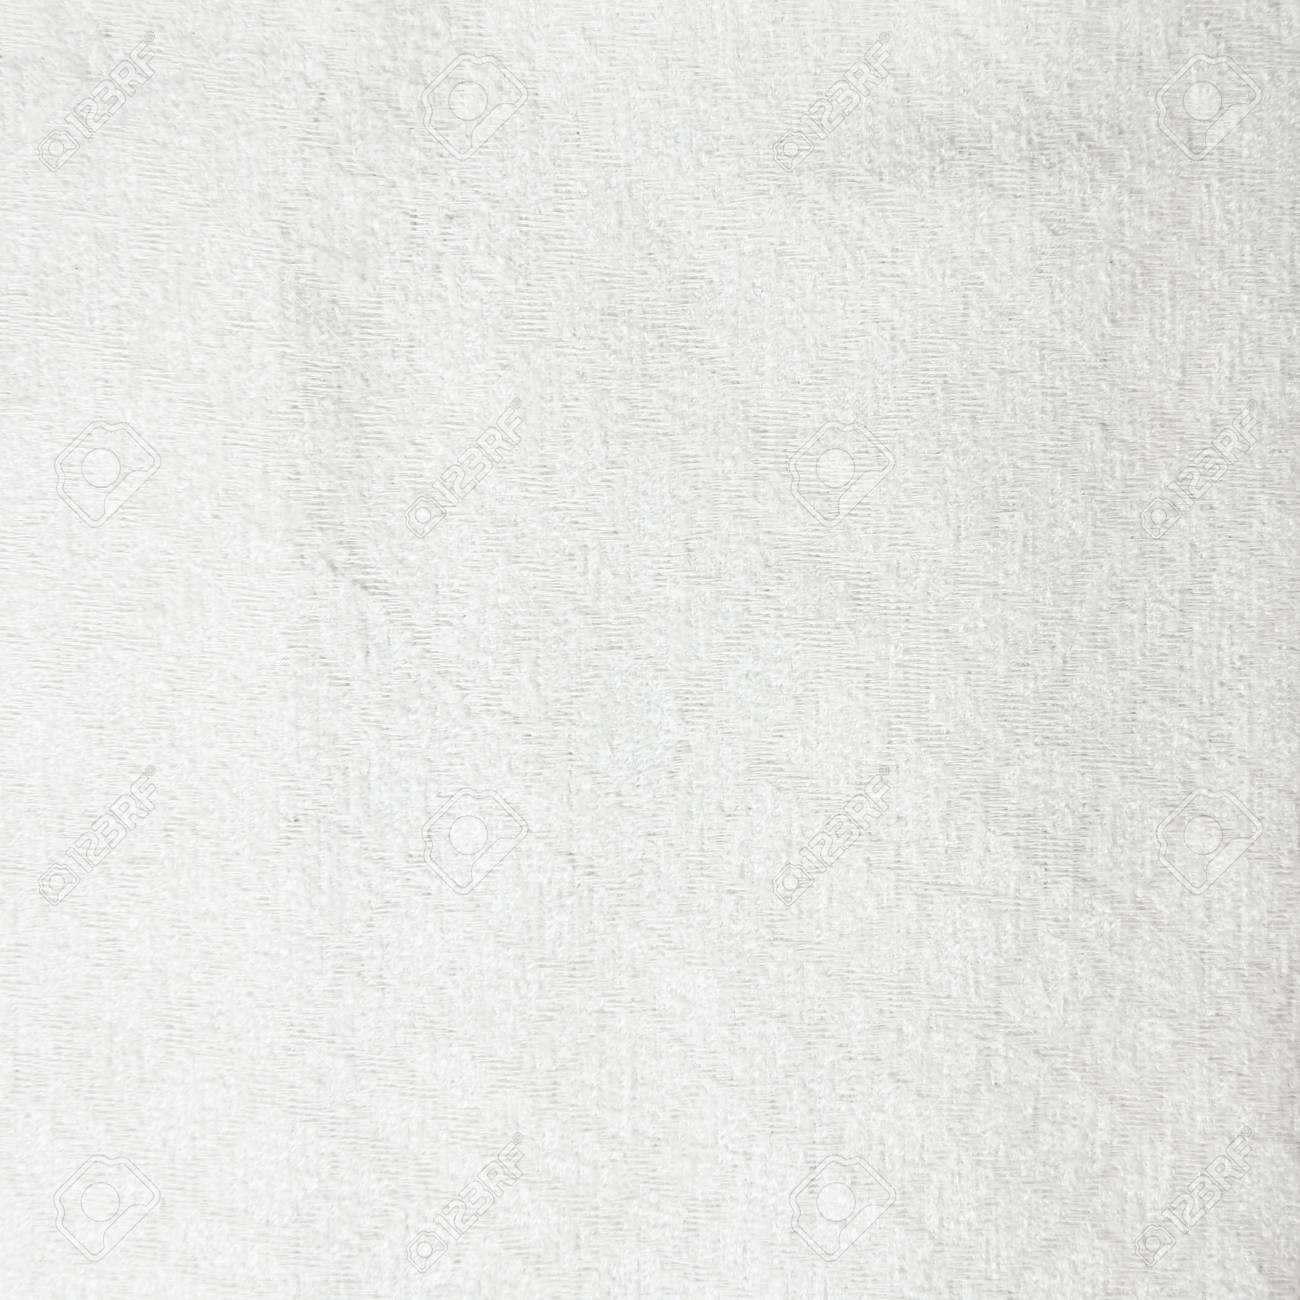 Fabric texture for background Stock Photo - 17115303